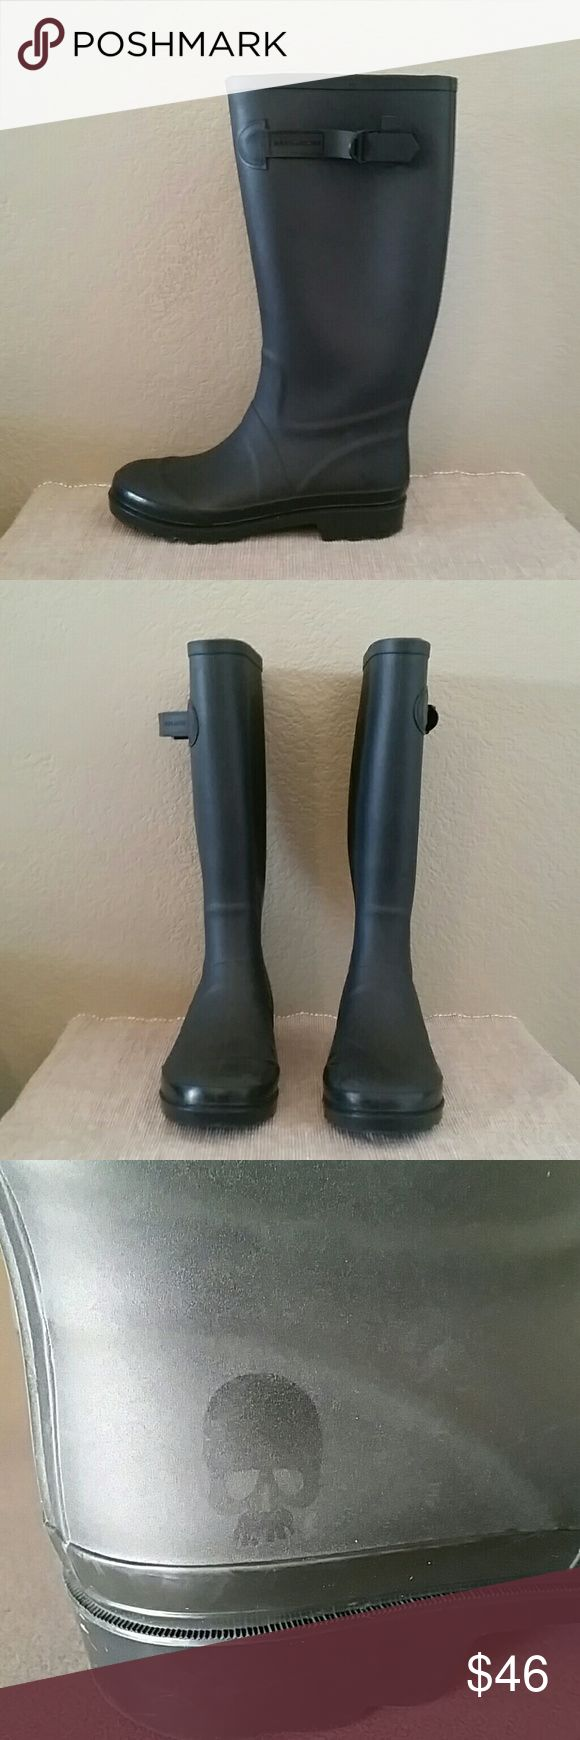 Marc Jacobs skull matte rubber rain boots Buckle Marc Jacobs black rubber rain boots, matte, plastic buckle detail, skull on outside heel, 1 1/2 inch heel, 14 1/4 total boot height, pre-owned, see pics for marks, size 37 Marc Jacobs Shoes Winter & Rain Boots